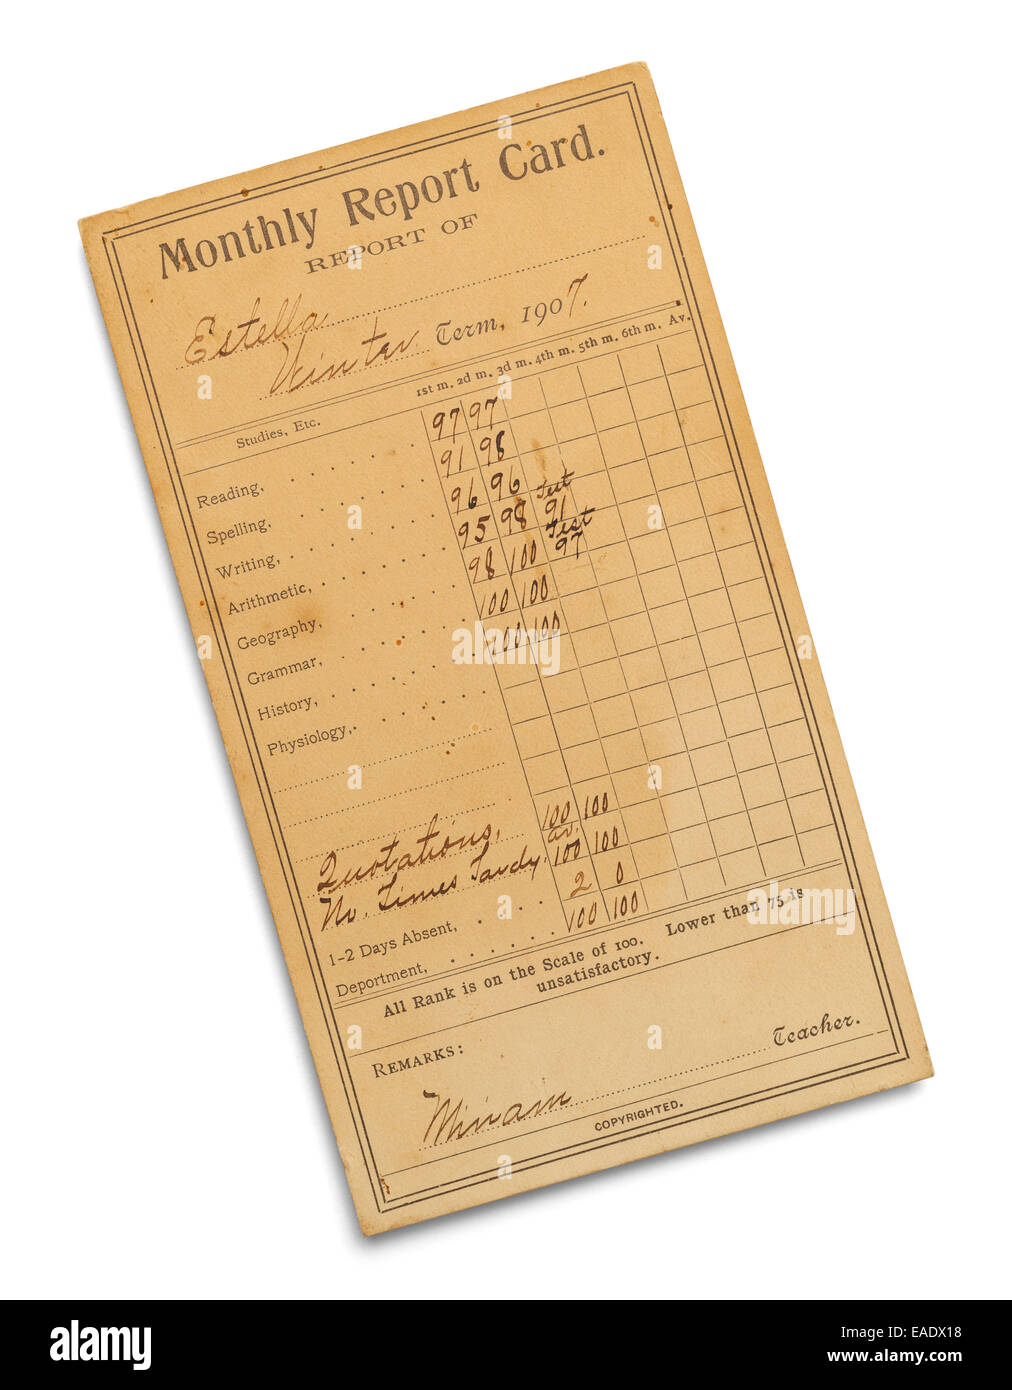 Old Aged Monthly Report Card Isolated on White Background. - Stock Image